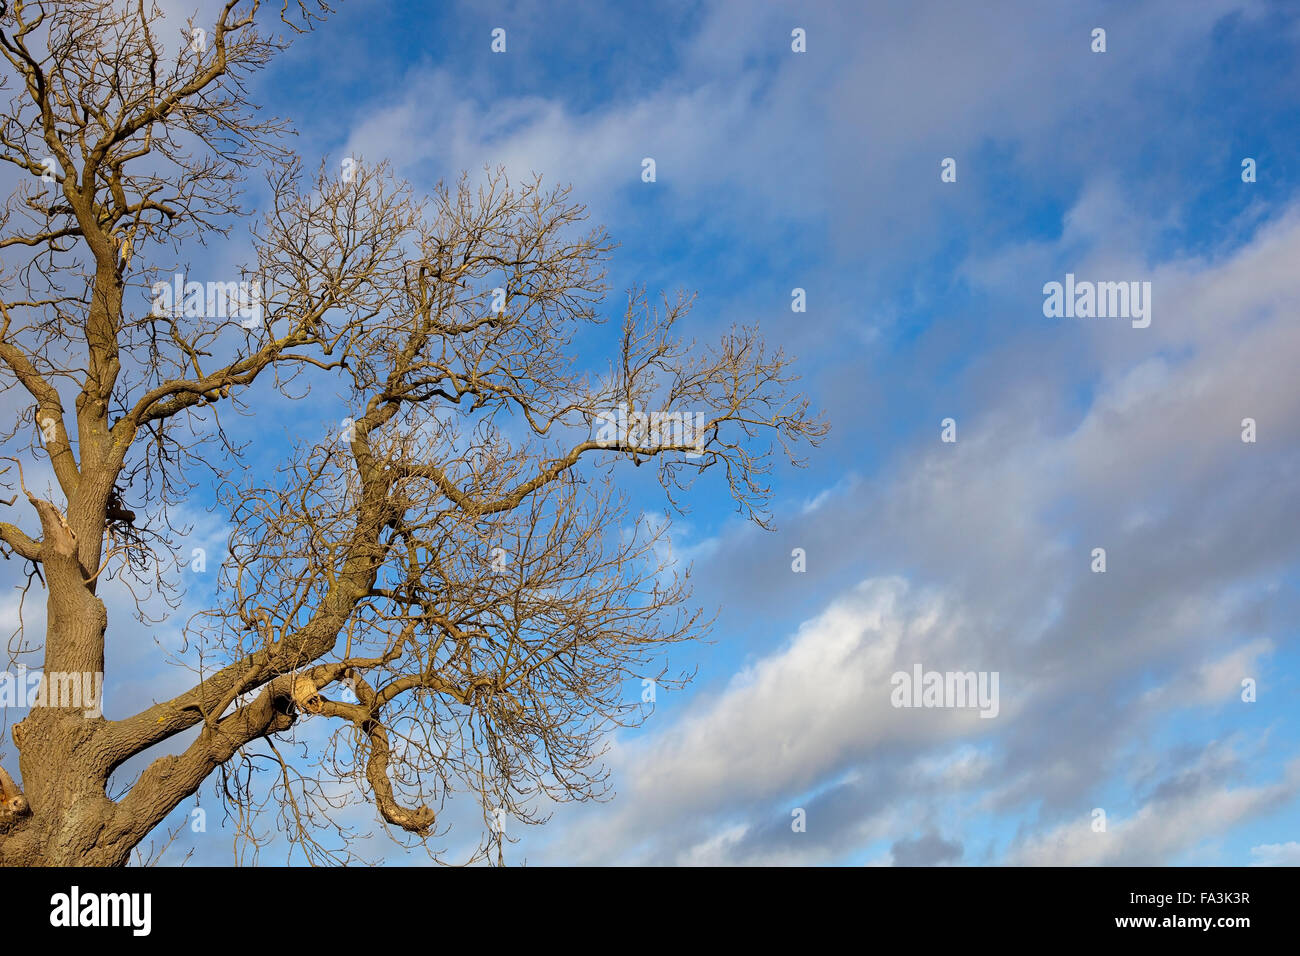 A leafless winter Ash tree with patterned bark and contorted branches under a blue sky with dramatic clouds - Stock Image